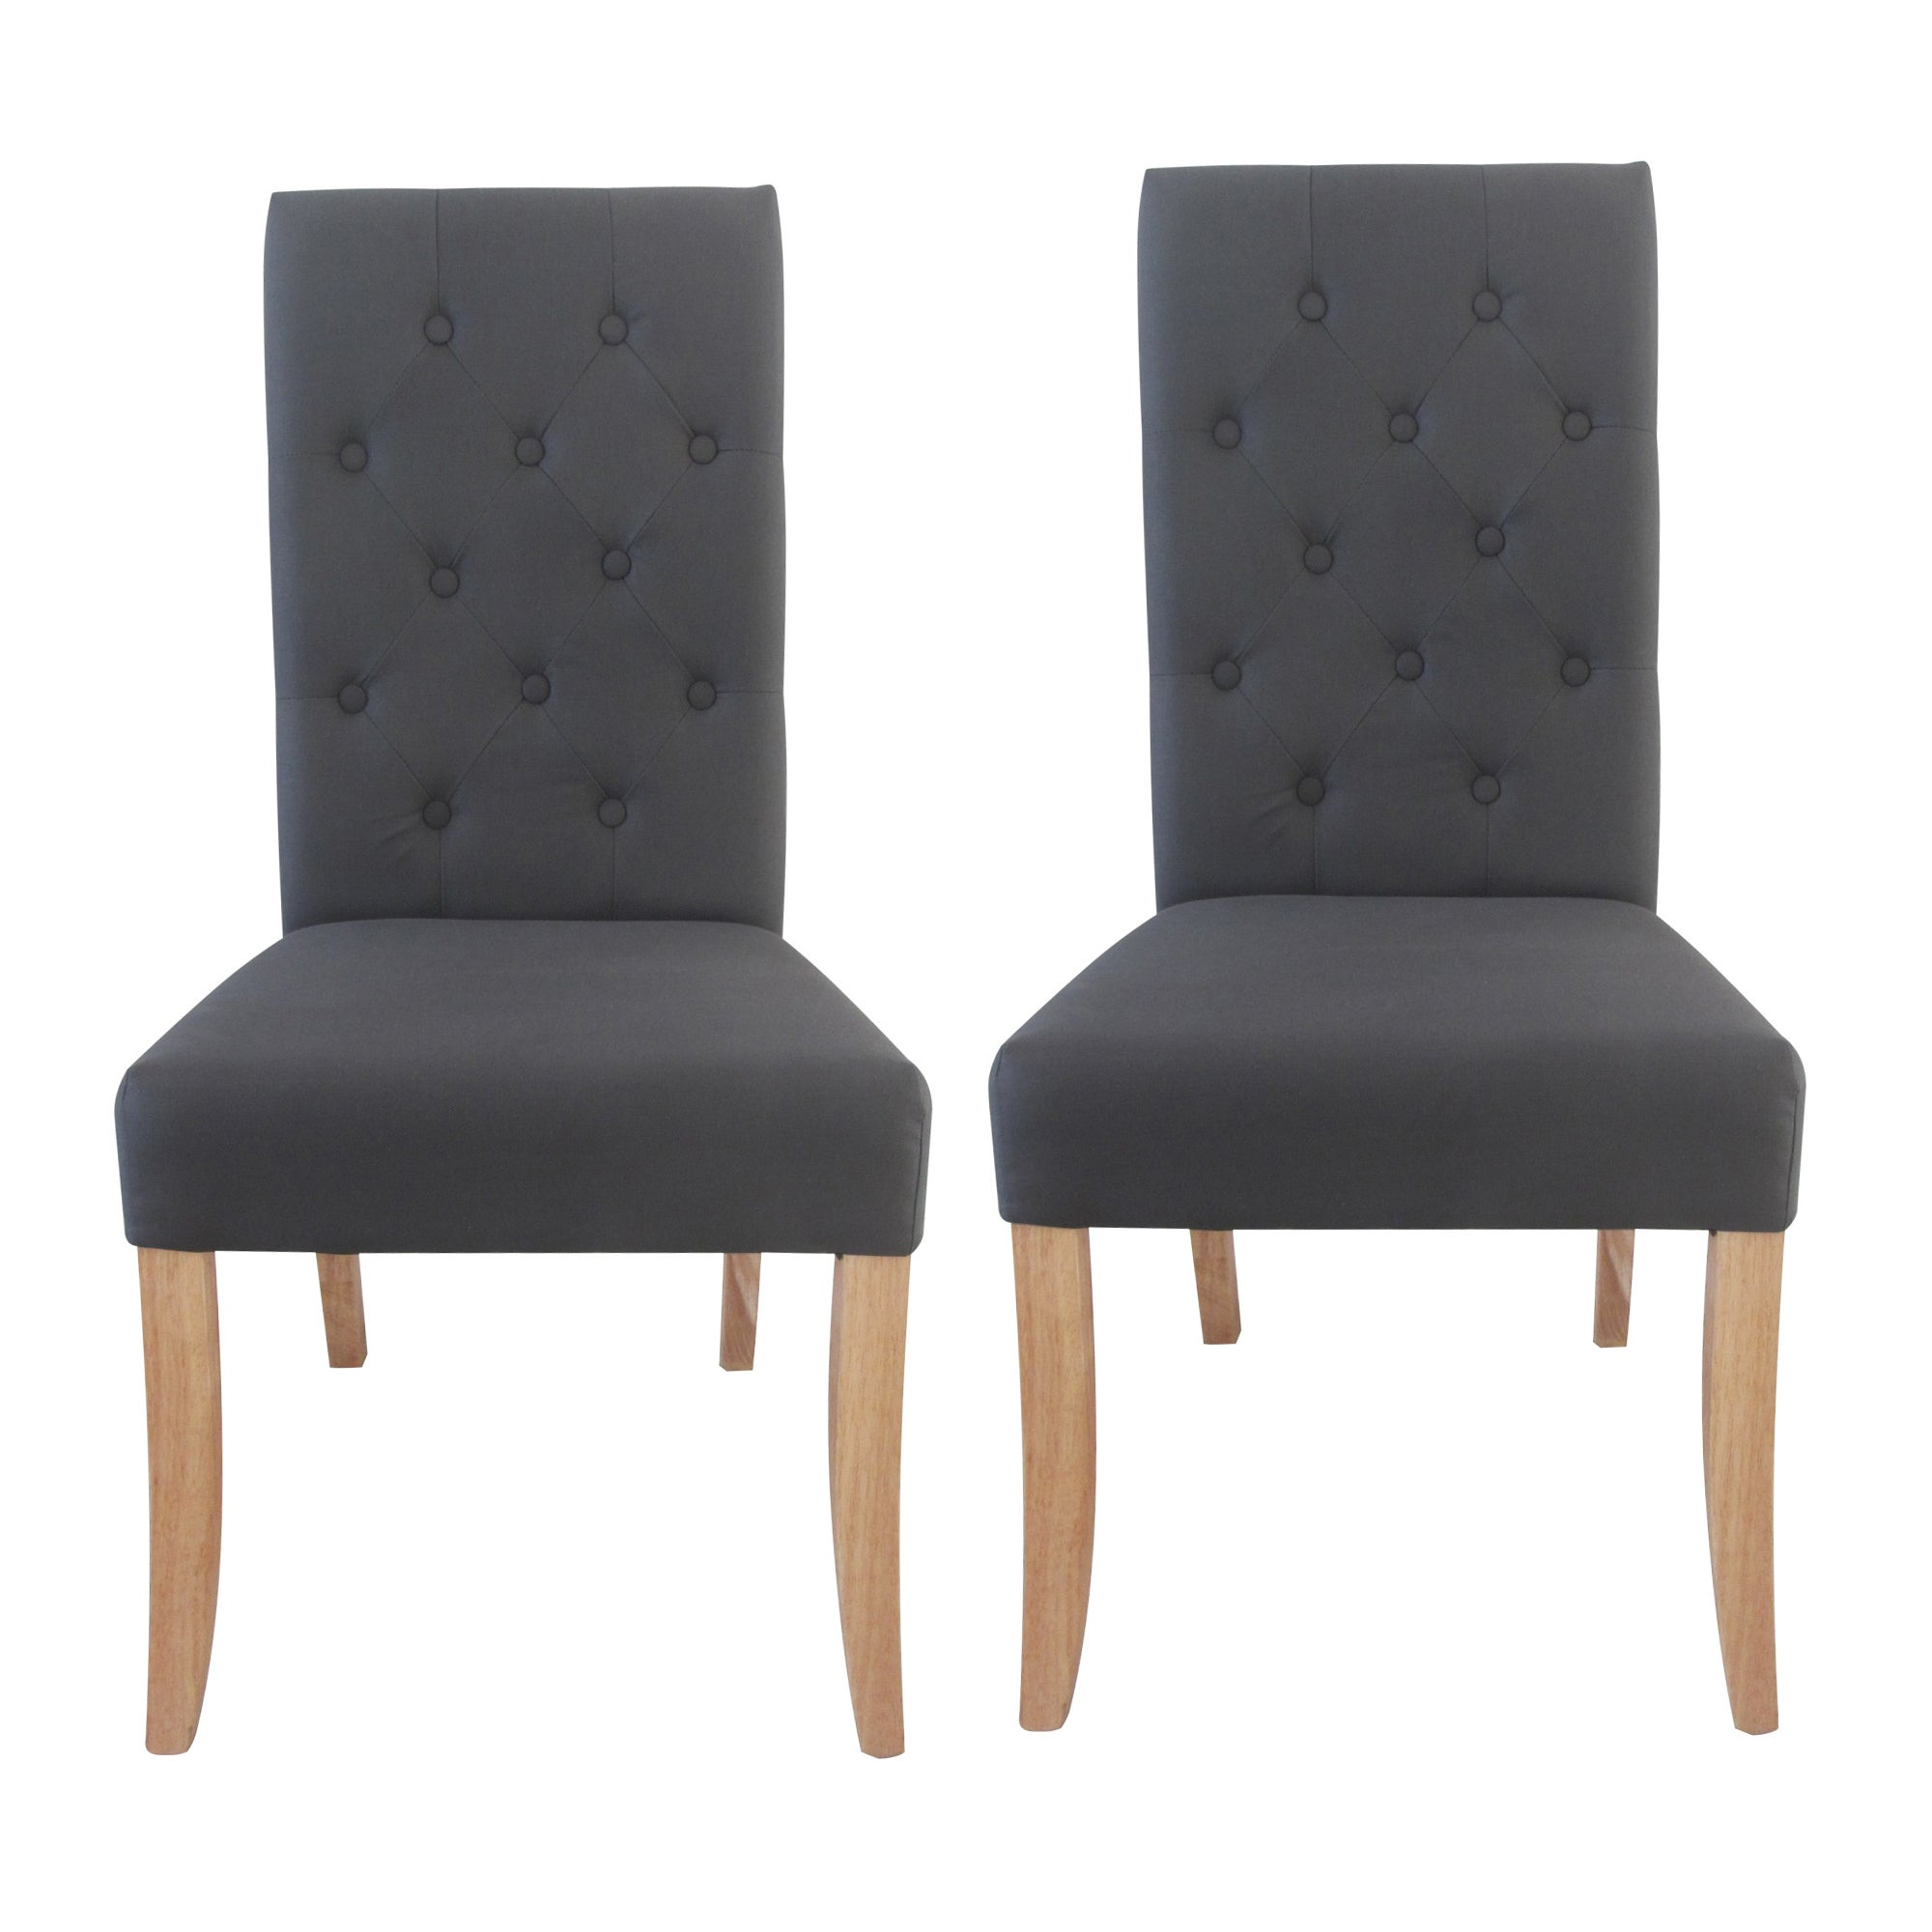 Antoinette Charcoal Pair of Dining Chairs Dark Grey